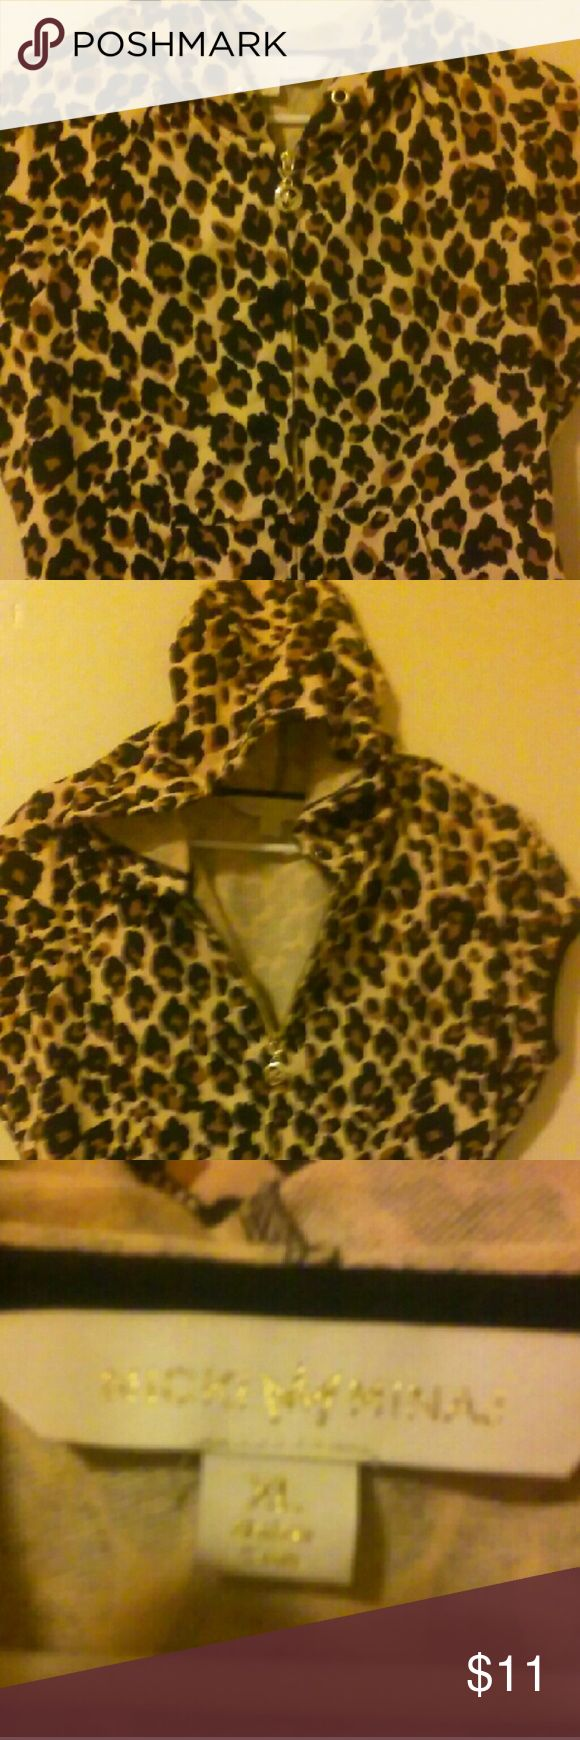 Leopard shirt Leopard zip up short sleeve shirt/jacket, with hood. New, never worn. Ripped tags off to wear but does not fit. Nicky minage Tops Sweatshirts & Hoodies